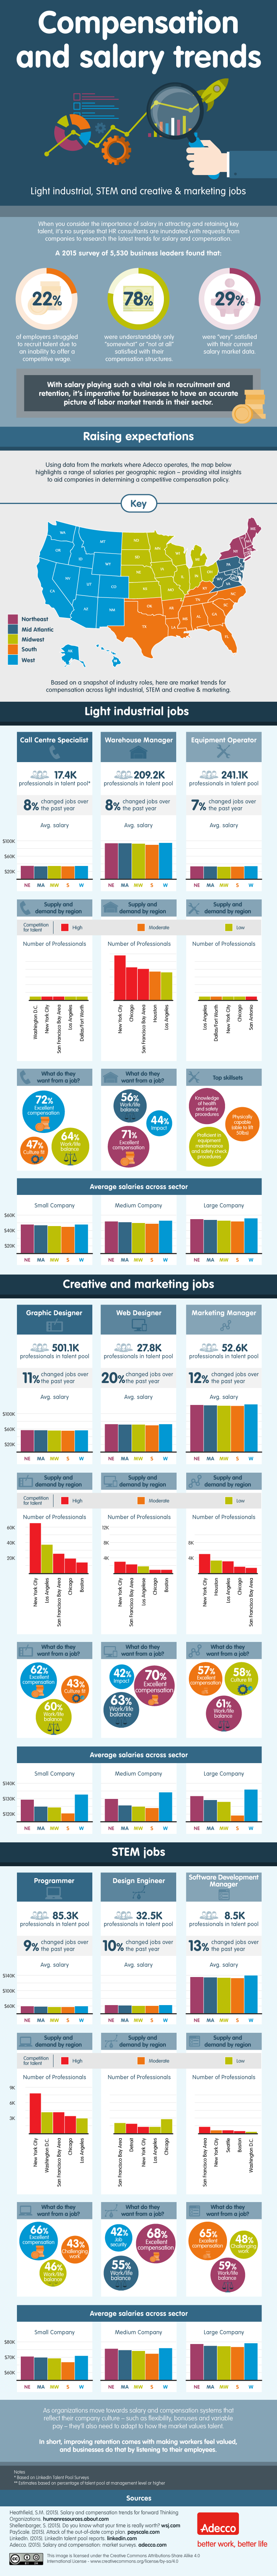 Compensation Trends: Light Industrial, STEM & Creative & Marketing Jobs